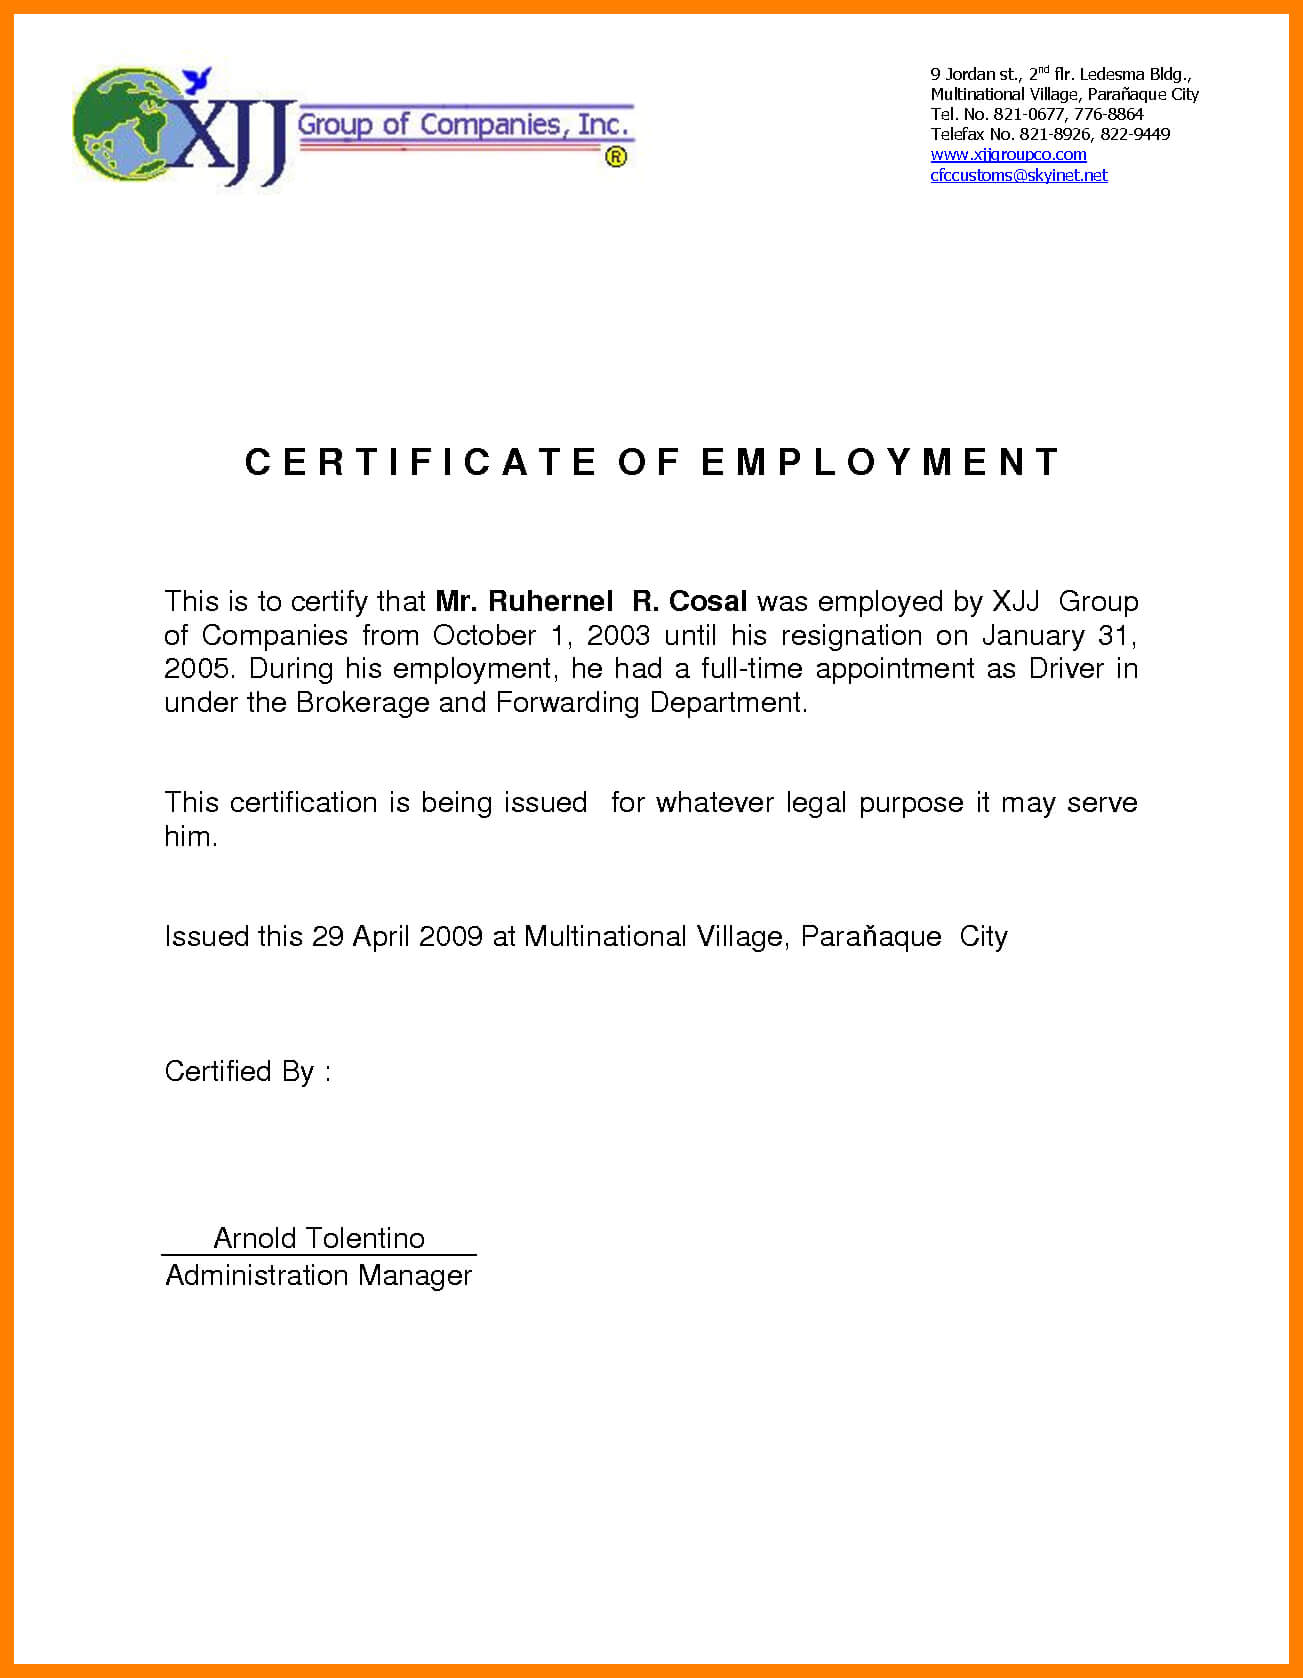 Certificate Of Employment Sample | Certificates Templates Free with regard to Template Of Certificate Of Employment